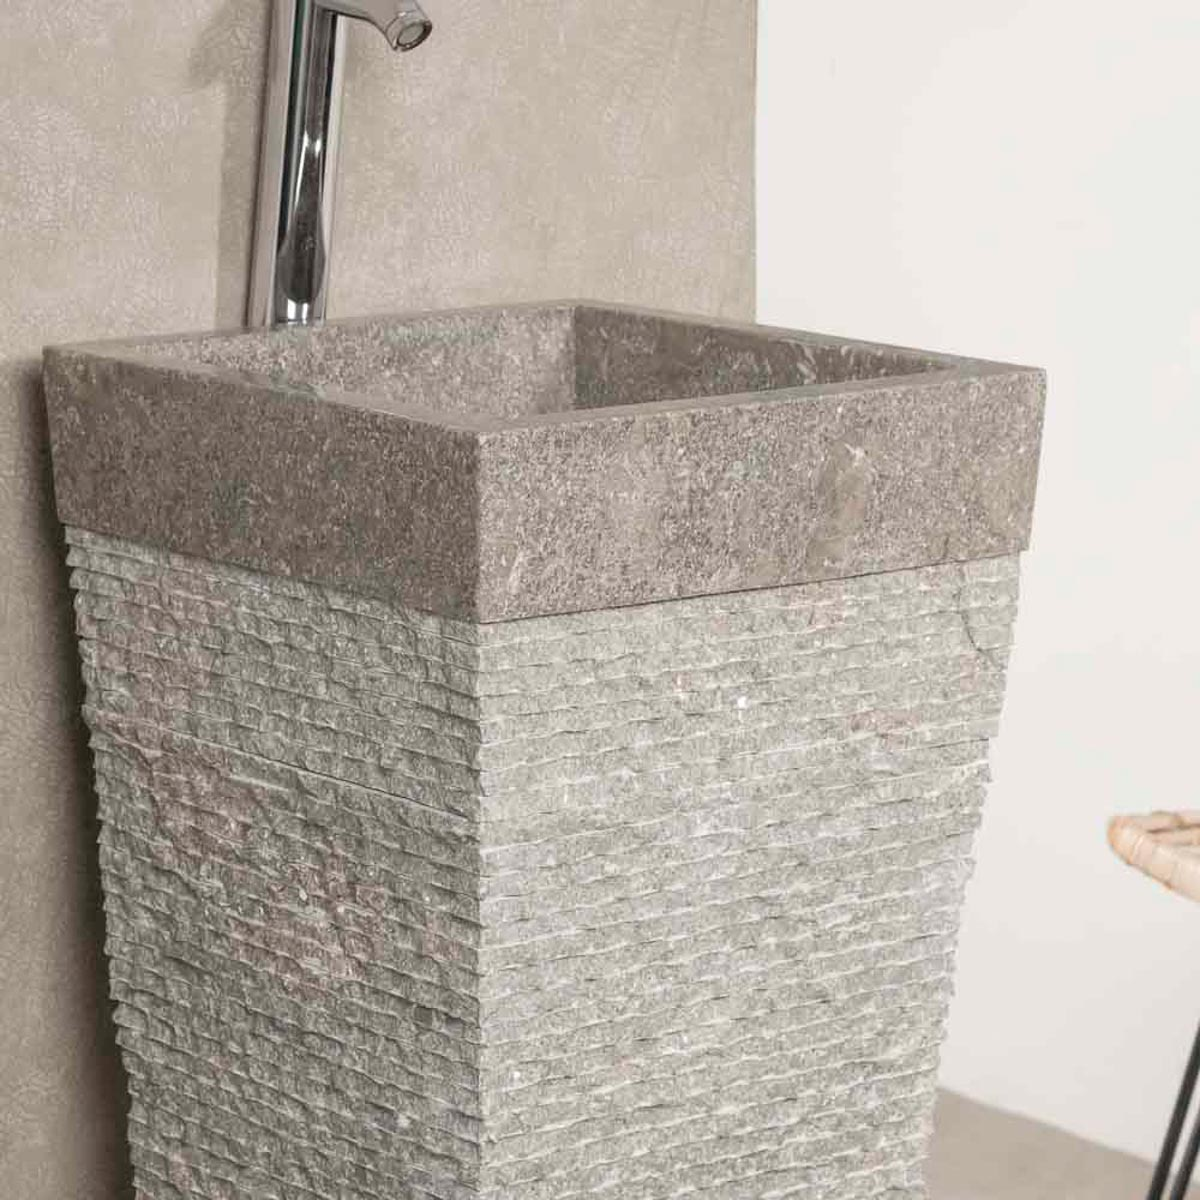 neuf vasque salle de bain sur pied en pierre pyramide havana gris ebay. Black Bedroom Furniture Sets. Home Design Ideas